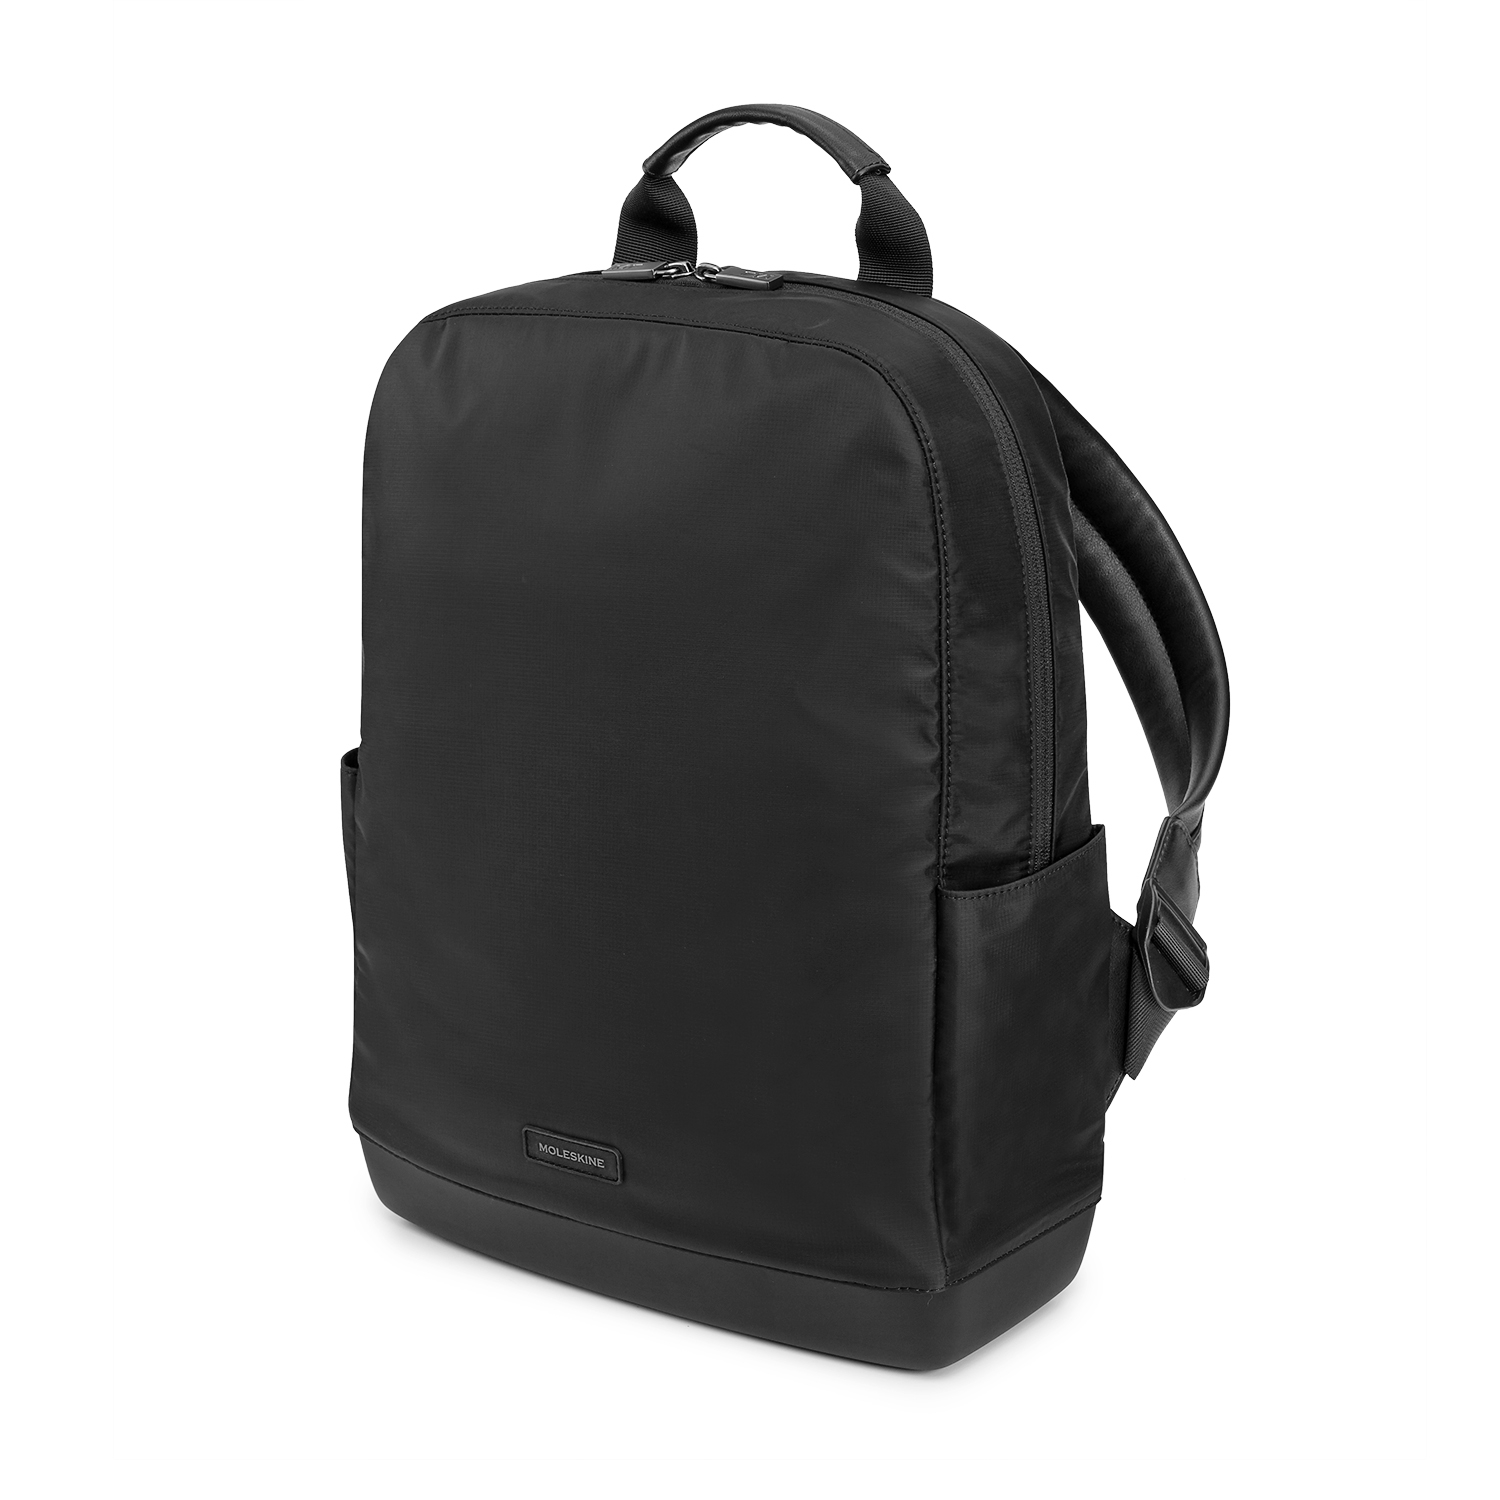 Рюкзак Moleskine The Backpack / Ripstop Nylon Чорний